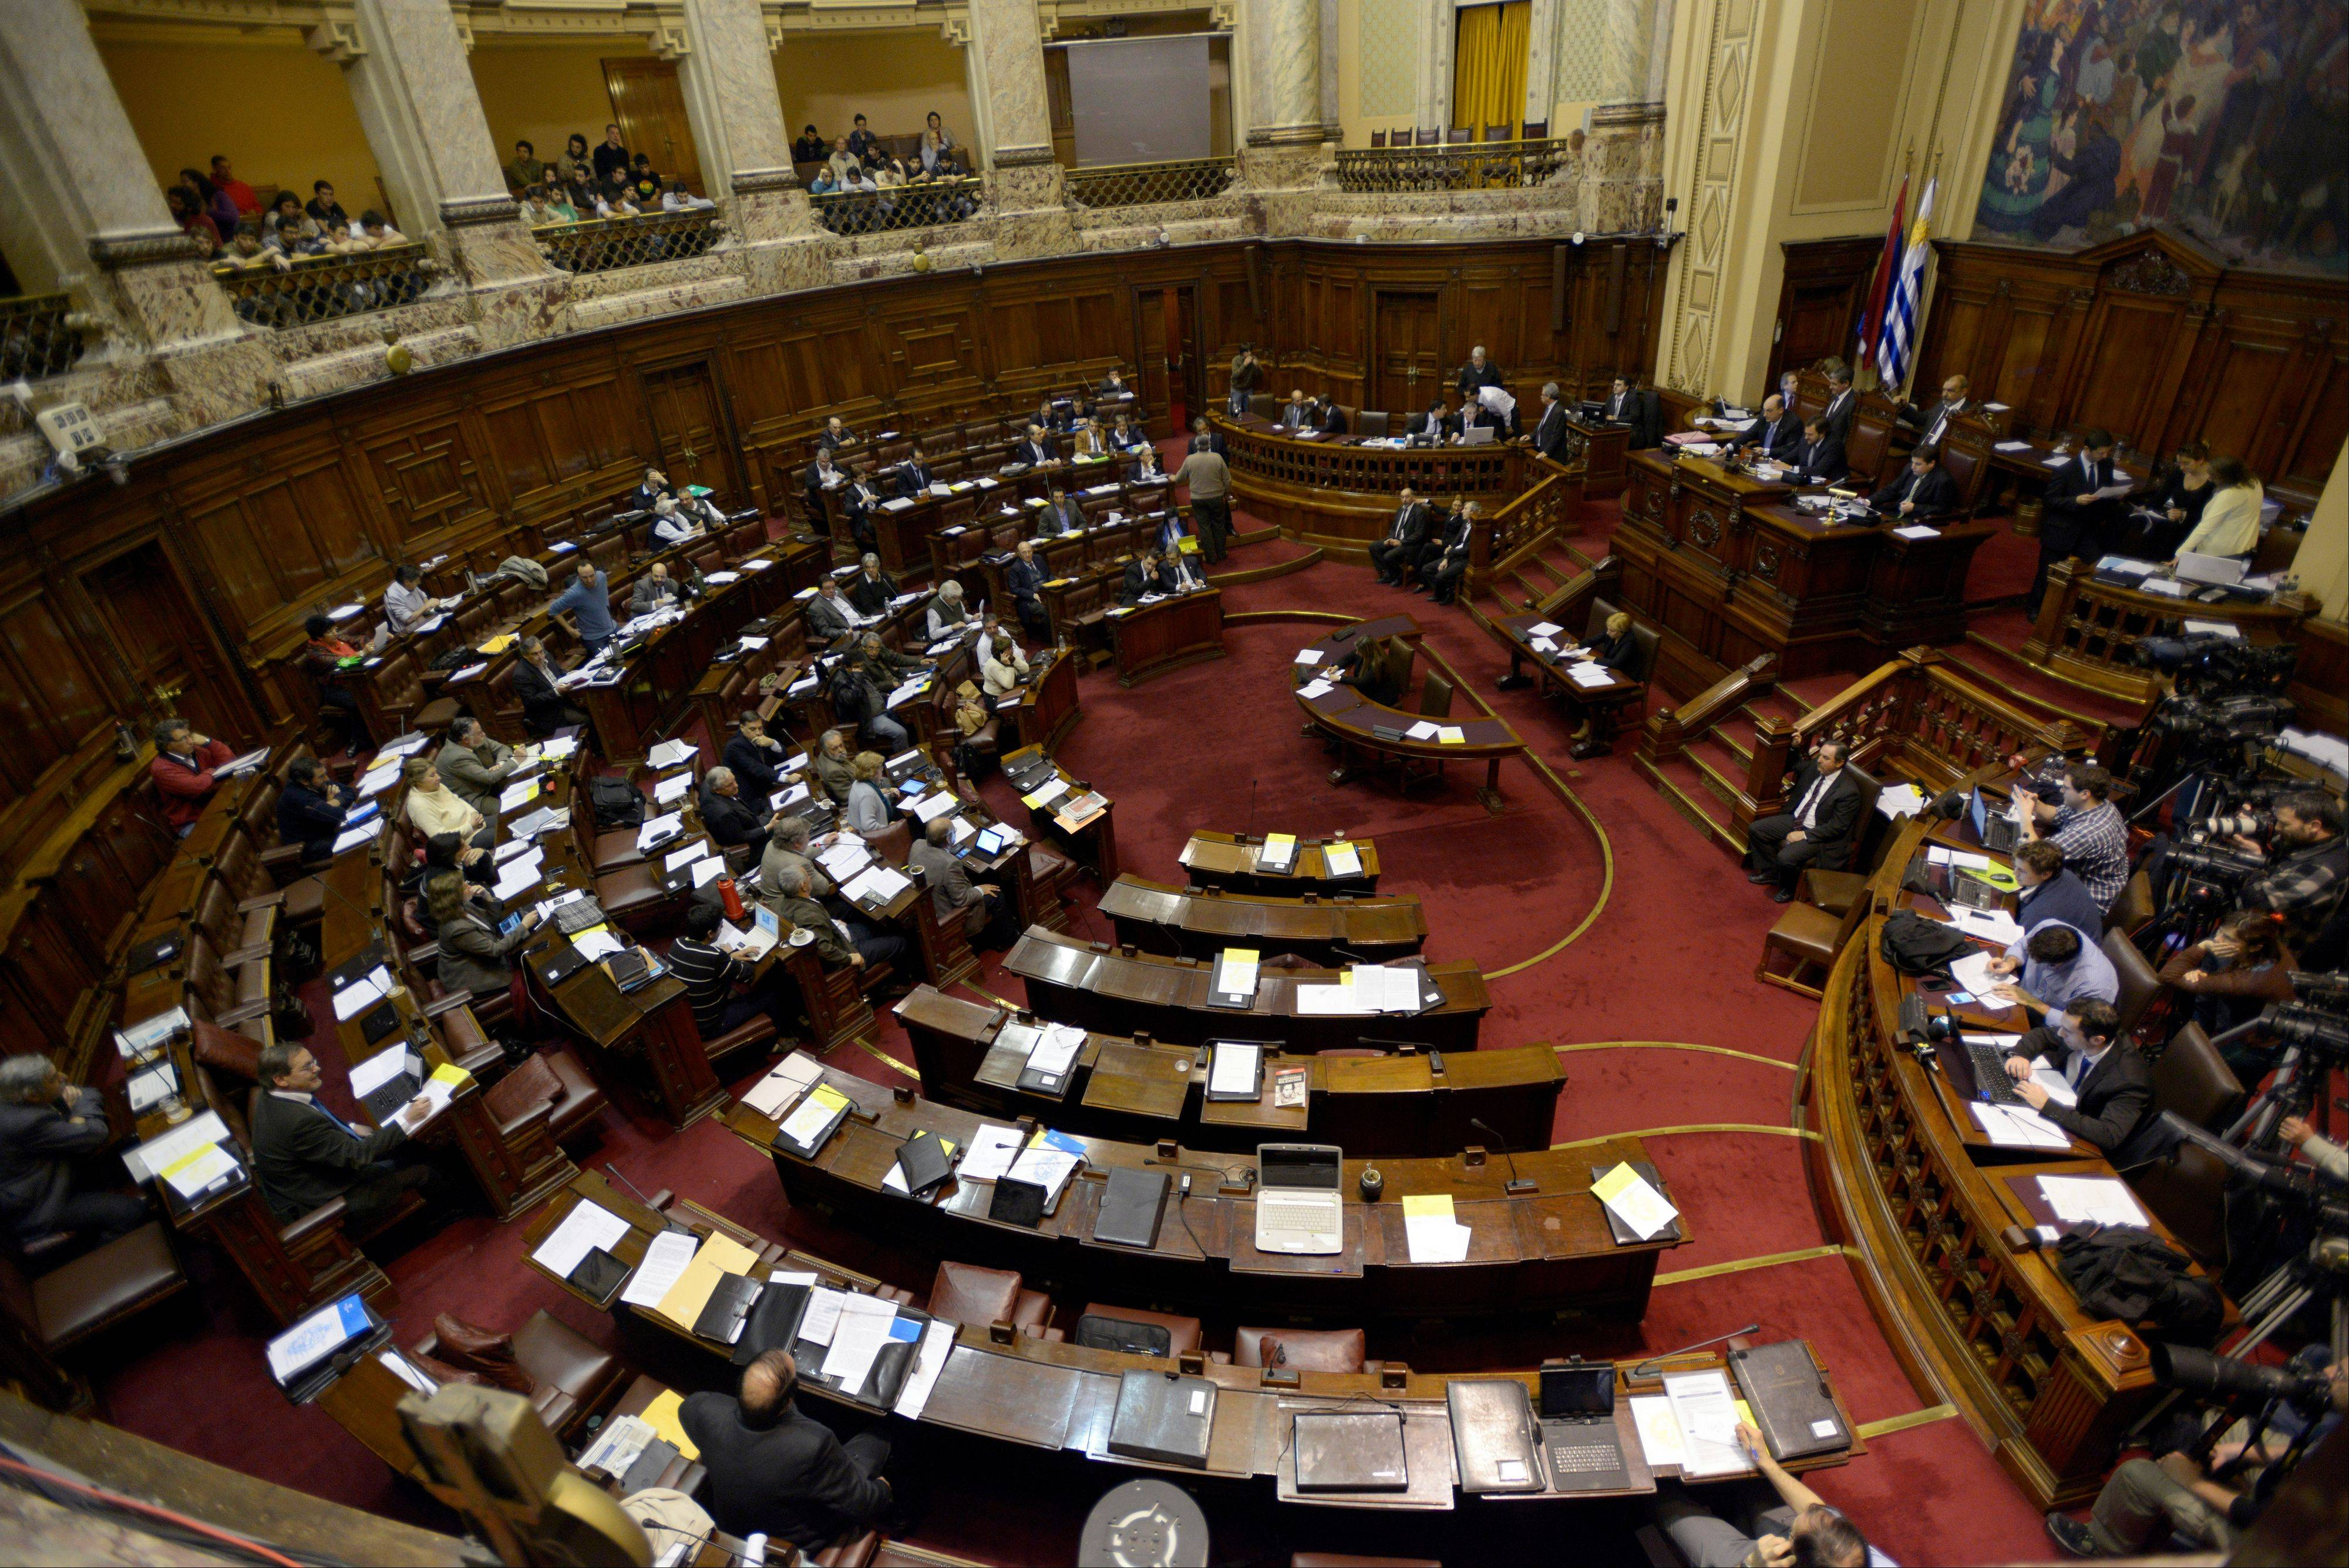 Lawmakers debate a bill that would legalize marijuana and regulate production and distribution in Montevideo, Uruguay, Wednesday, July 31, 2013. Uruguay's unprecedented plan to put the government at the center of a legal marijuana industry has made it halfway through congress.